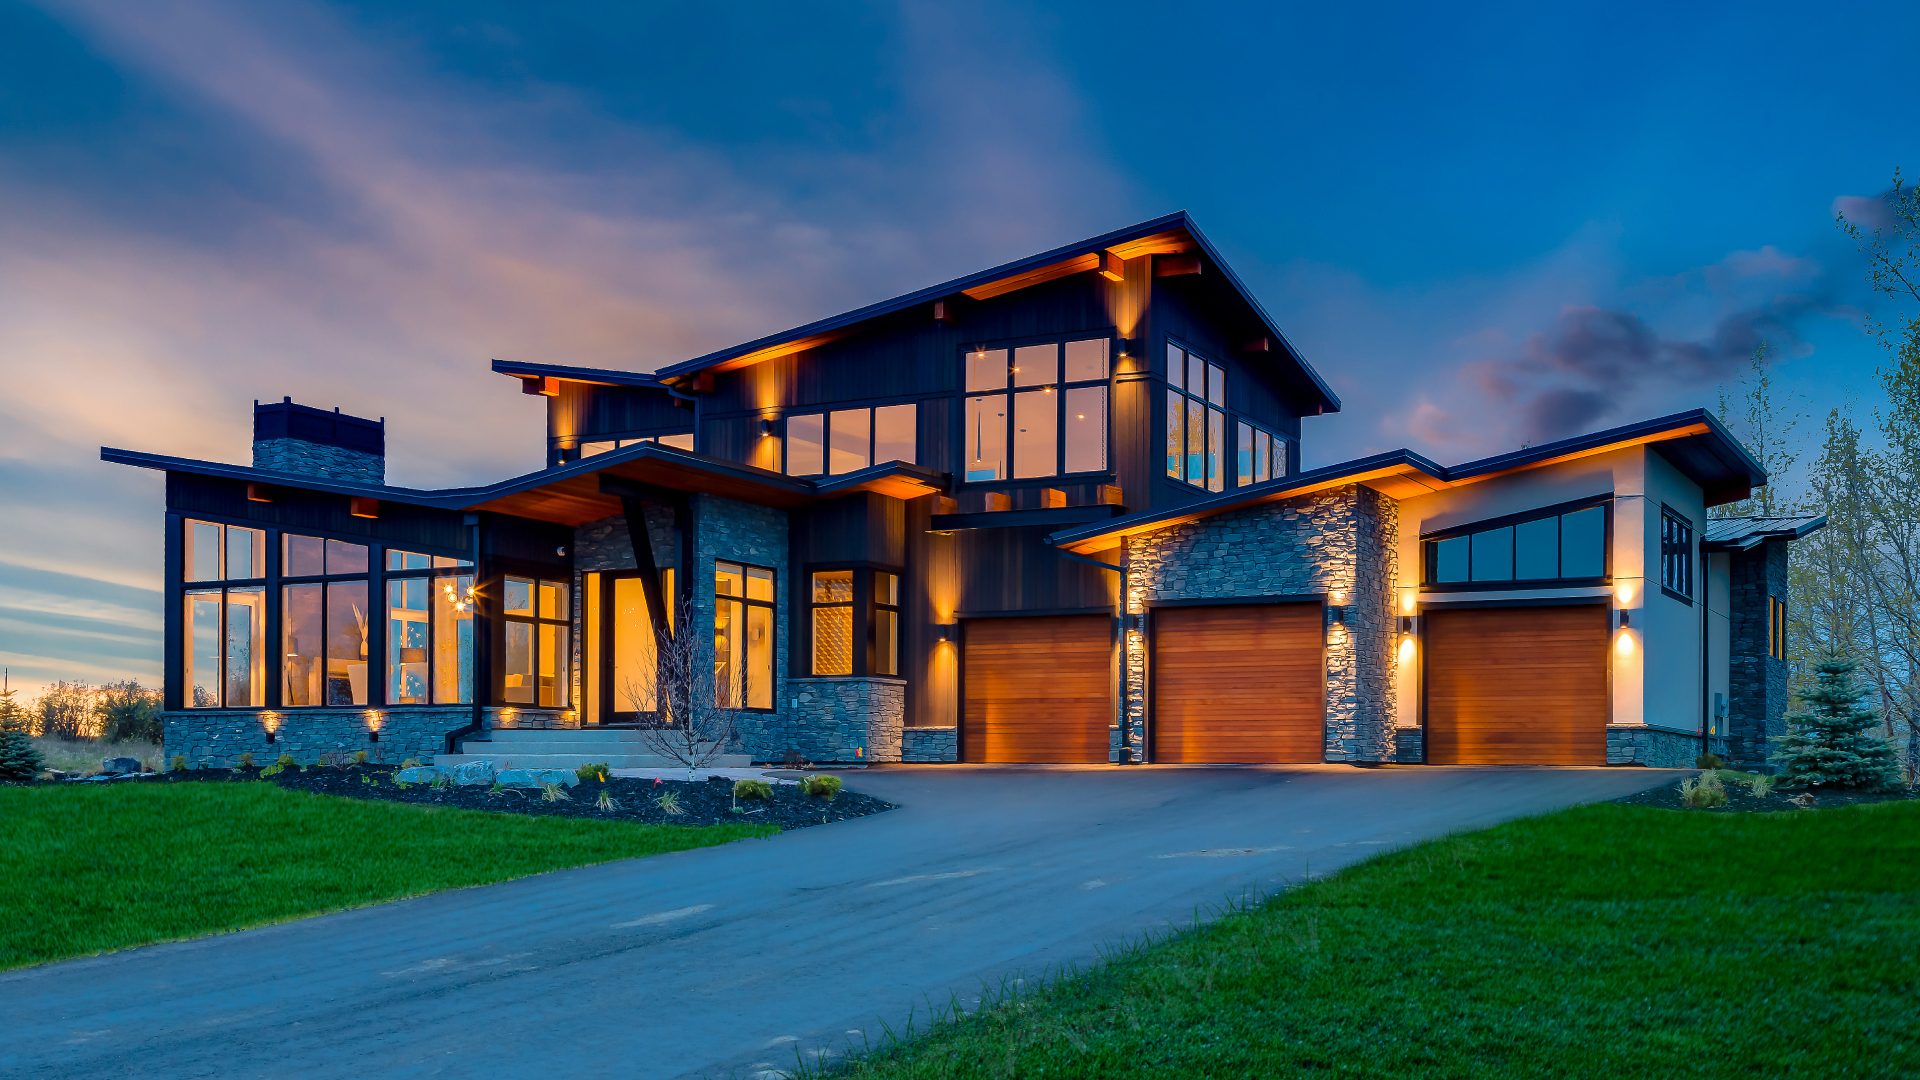 Custom Home Design Inspiration | West Ridge Fine Homes on home architecture, home design philippines, home floor plans and designs, home decor,